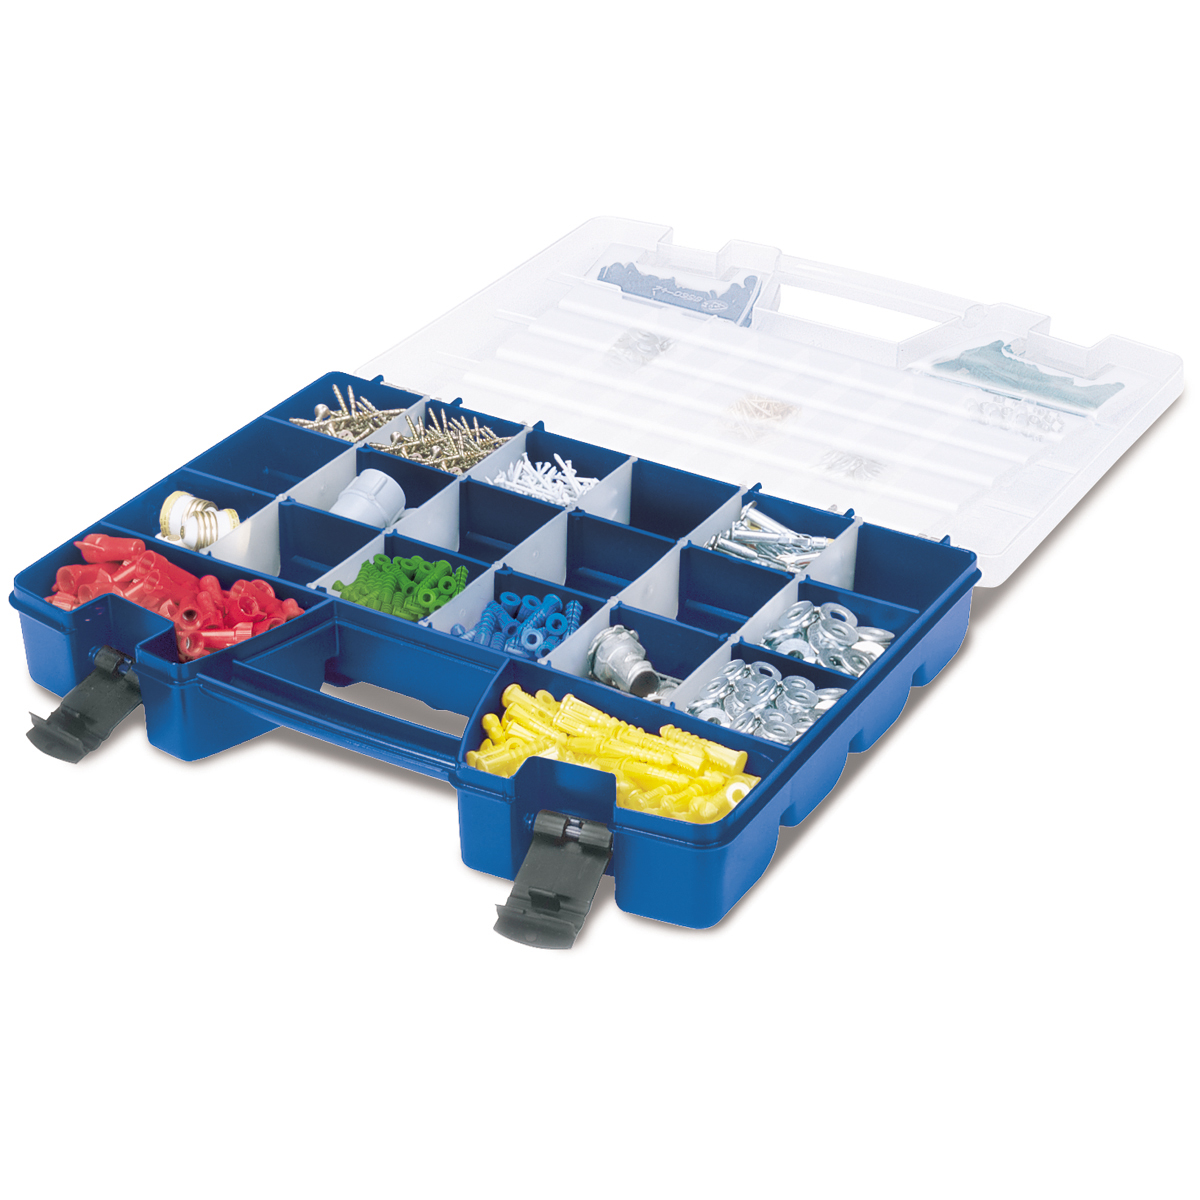 Portable Organizer, 62 Compartment 18-1/4 x 13-3/8 x 3-3/8, Blue (1).  This item sold in carton quantities of 1.